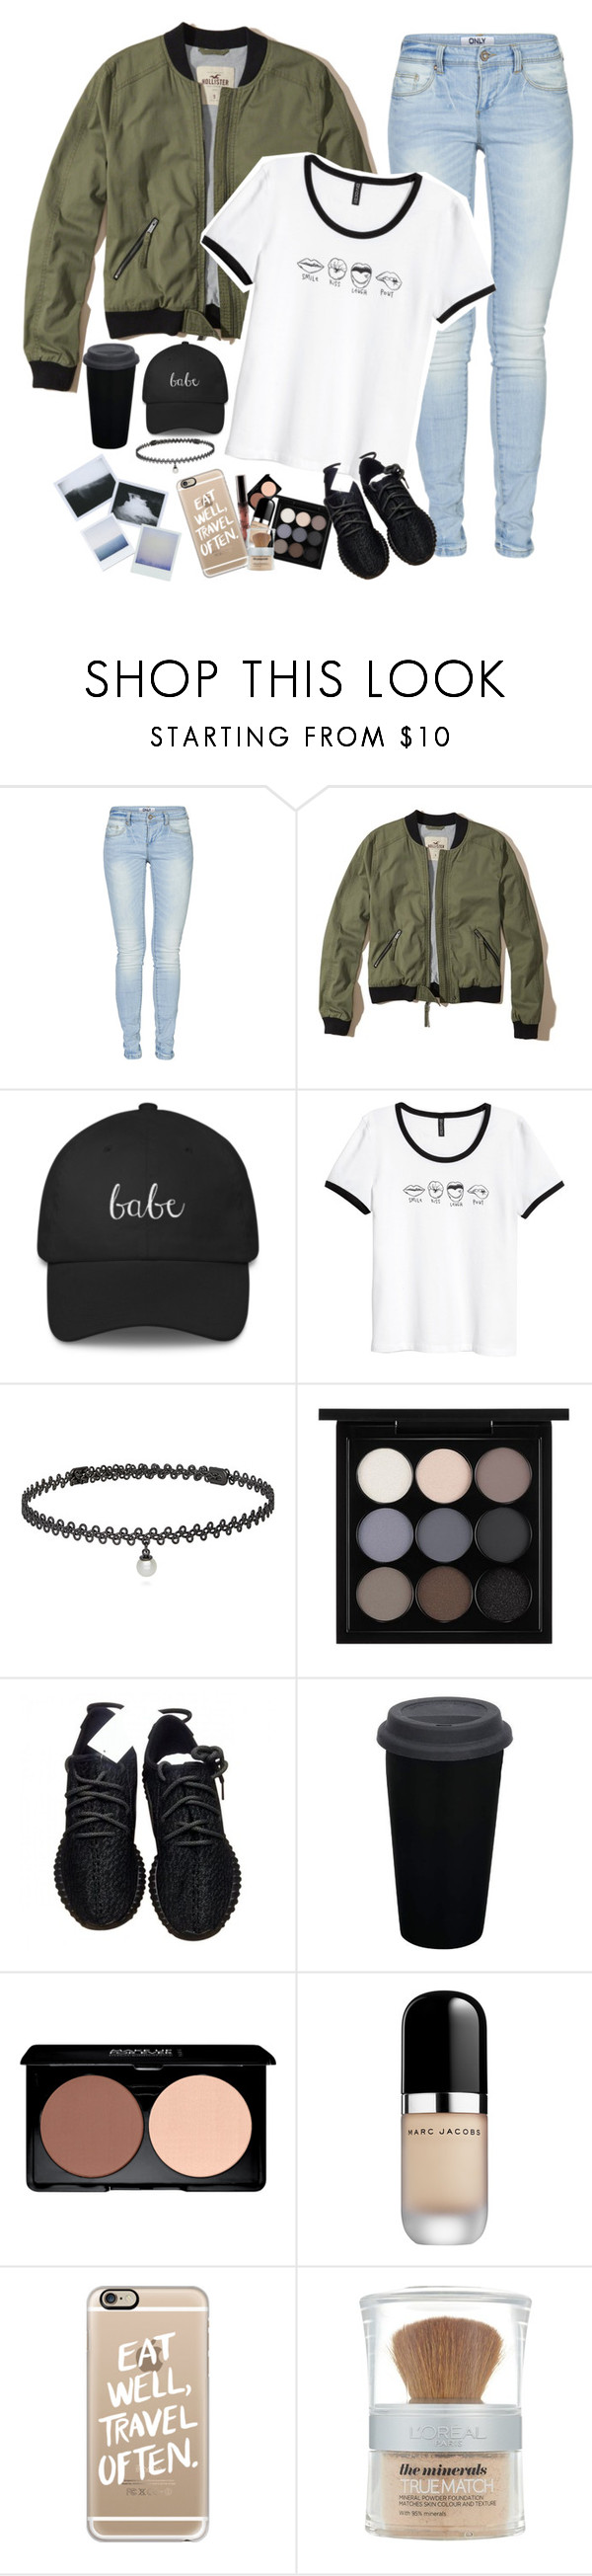 """{it's a disgrace, I was misplaced, born in the wrong time, and in the wrong place}"" by graciegirl2015 ❤ liked on Polyvore featuring ONLY, Hollister Co., BERRICLE, MAC Cosmetics, adidas, Marc Jacobs, Casetify and L'Oréal Paris"